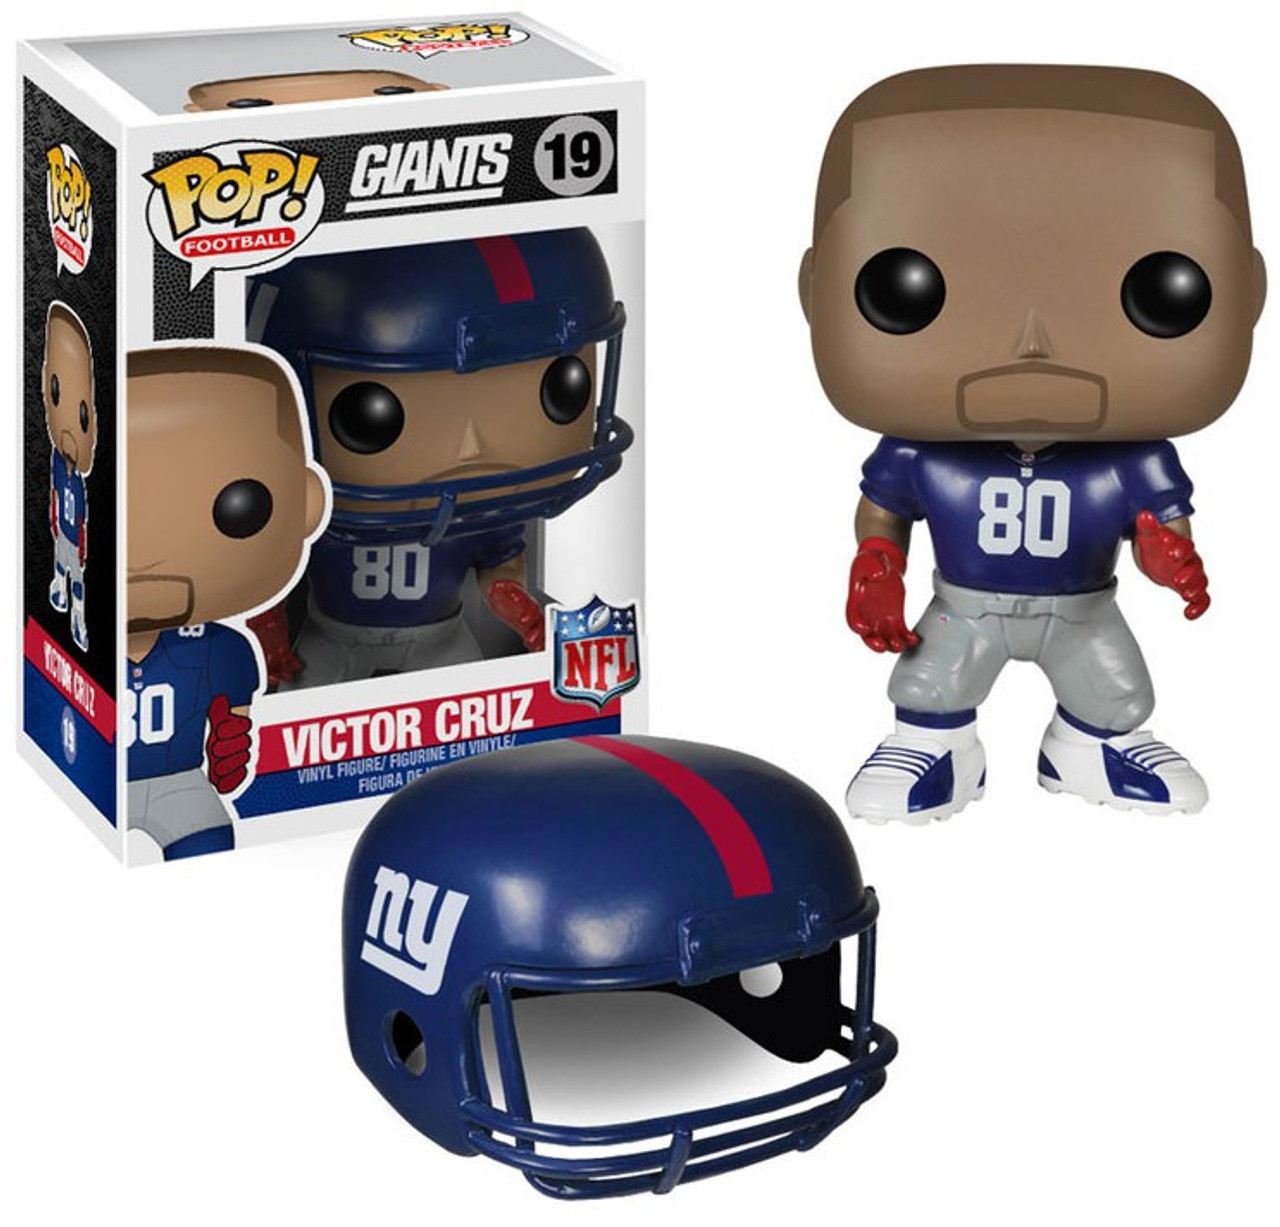 Funko NFL New York Giants Funko POP Sports Victor Cruz Vinyl Figure 19 Blue  Jersey - ToyWiz 740e21440